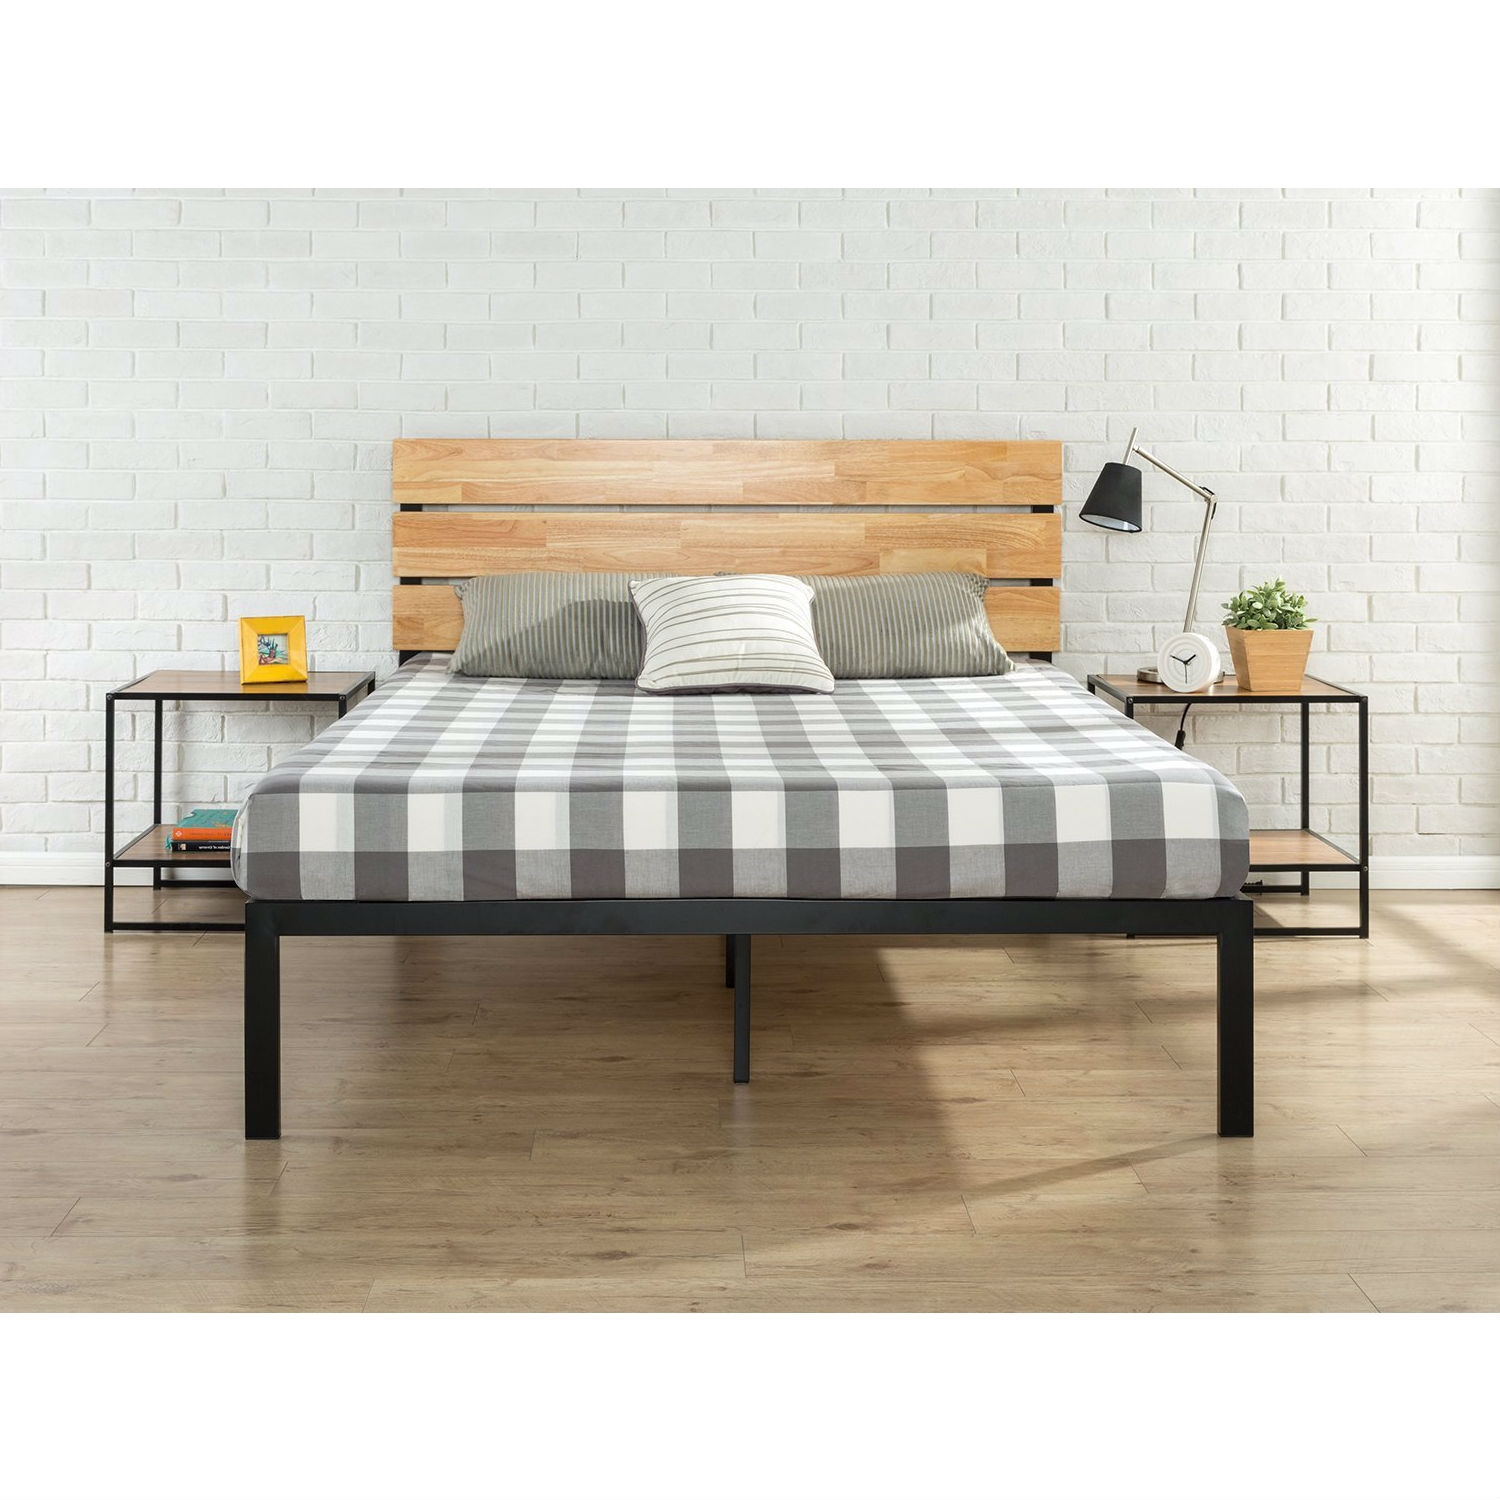 King Size Modern Metal Platform Bed Frame With Wood Headboard And Slats Fastfurnishings Com